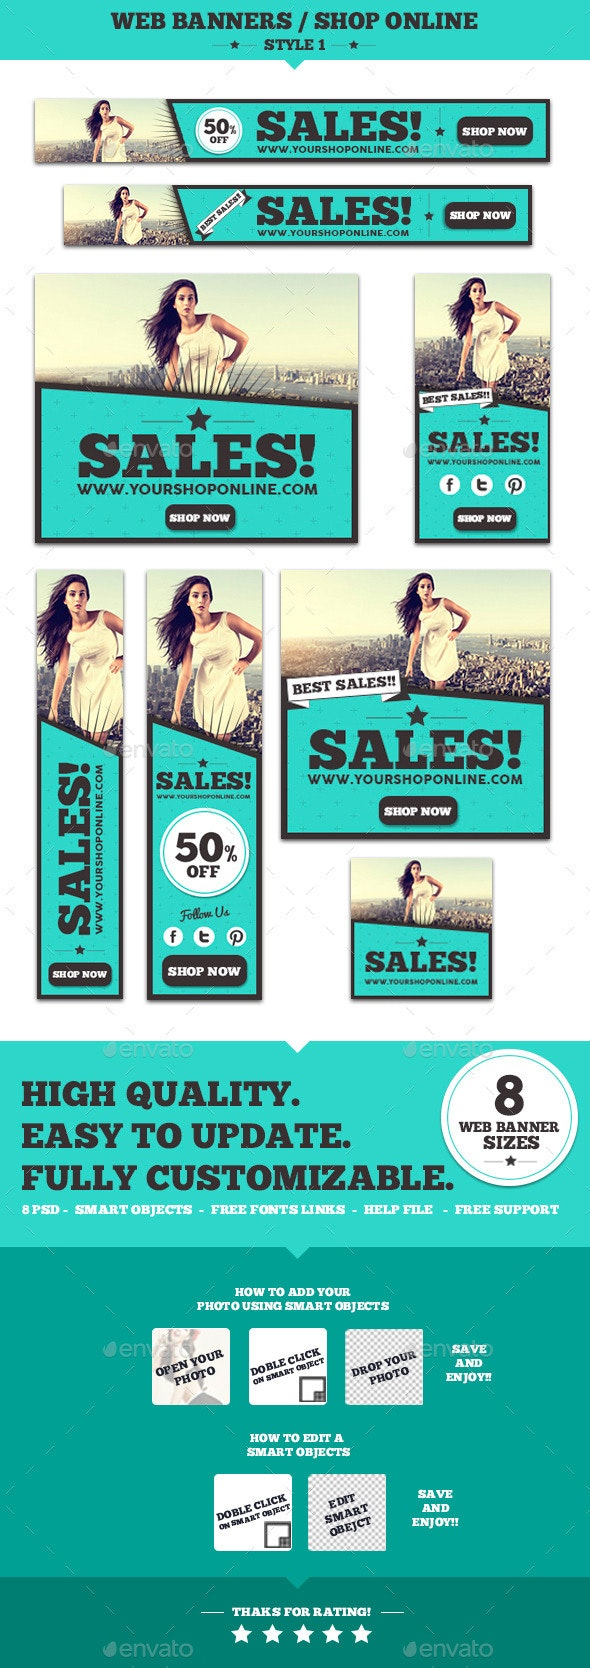 Web Banners Shop Online Style 1 - Banners & Ads Web Elements